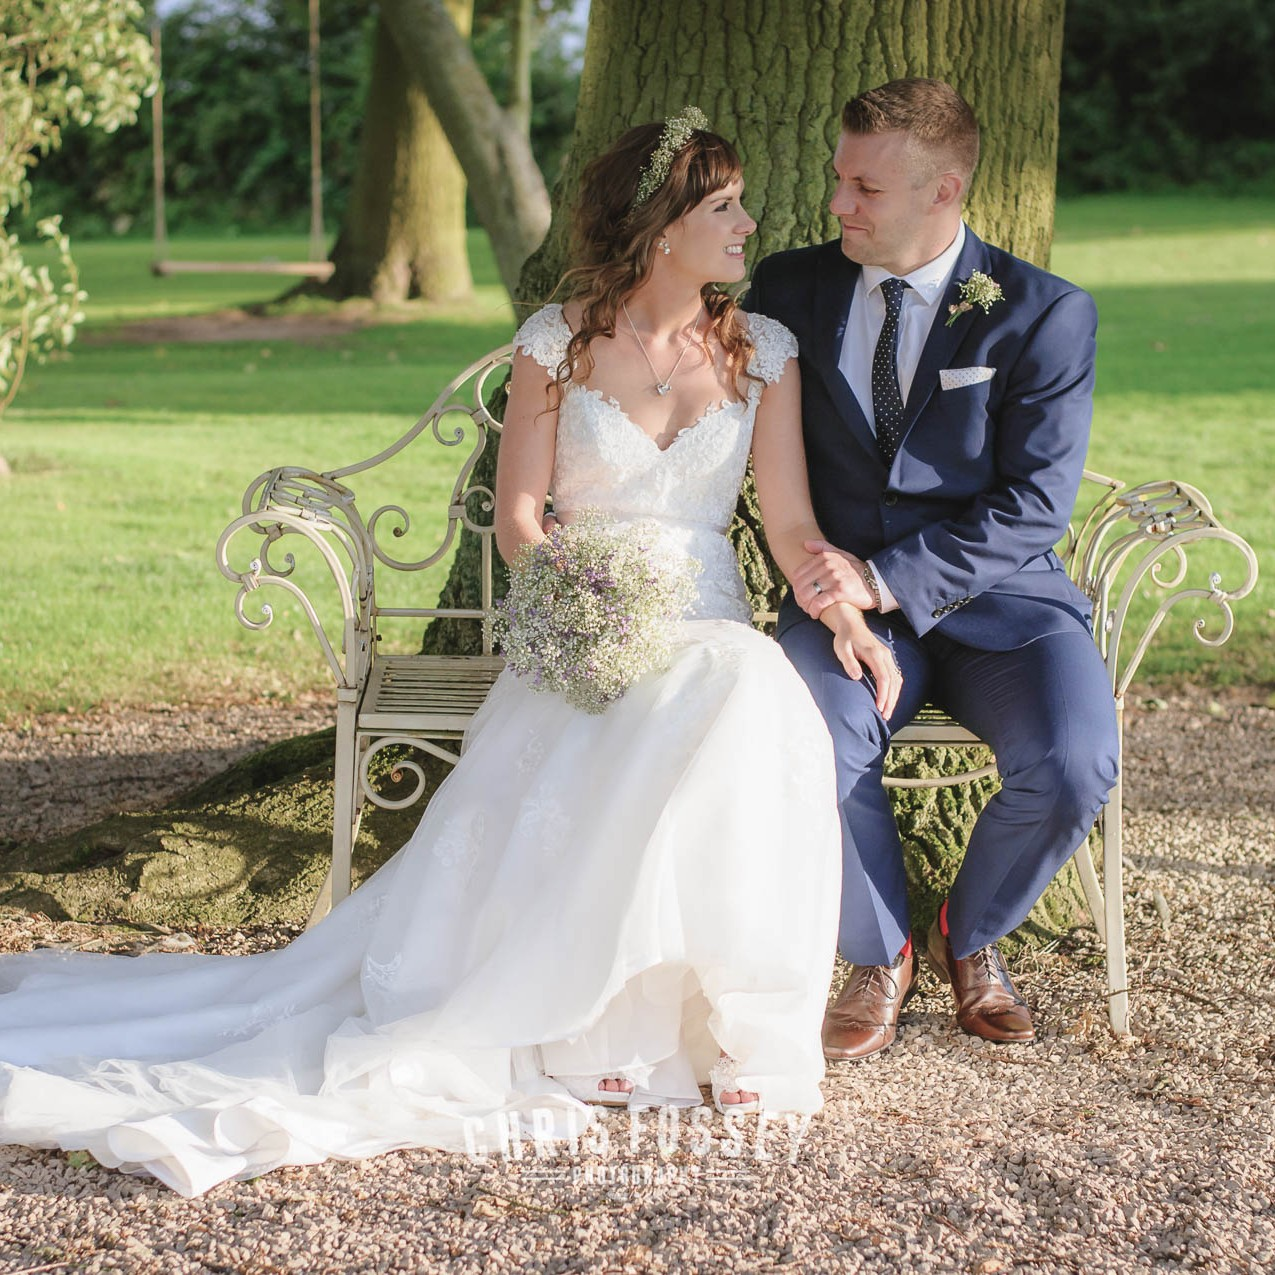 Warwickshire Wedding Photography Portfolio-Wethele Manor Wedding Photography by Chris Fossey Photography-13